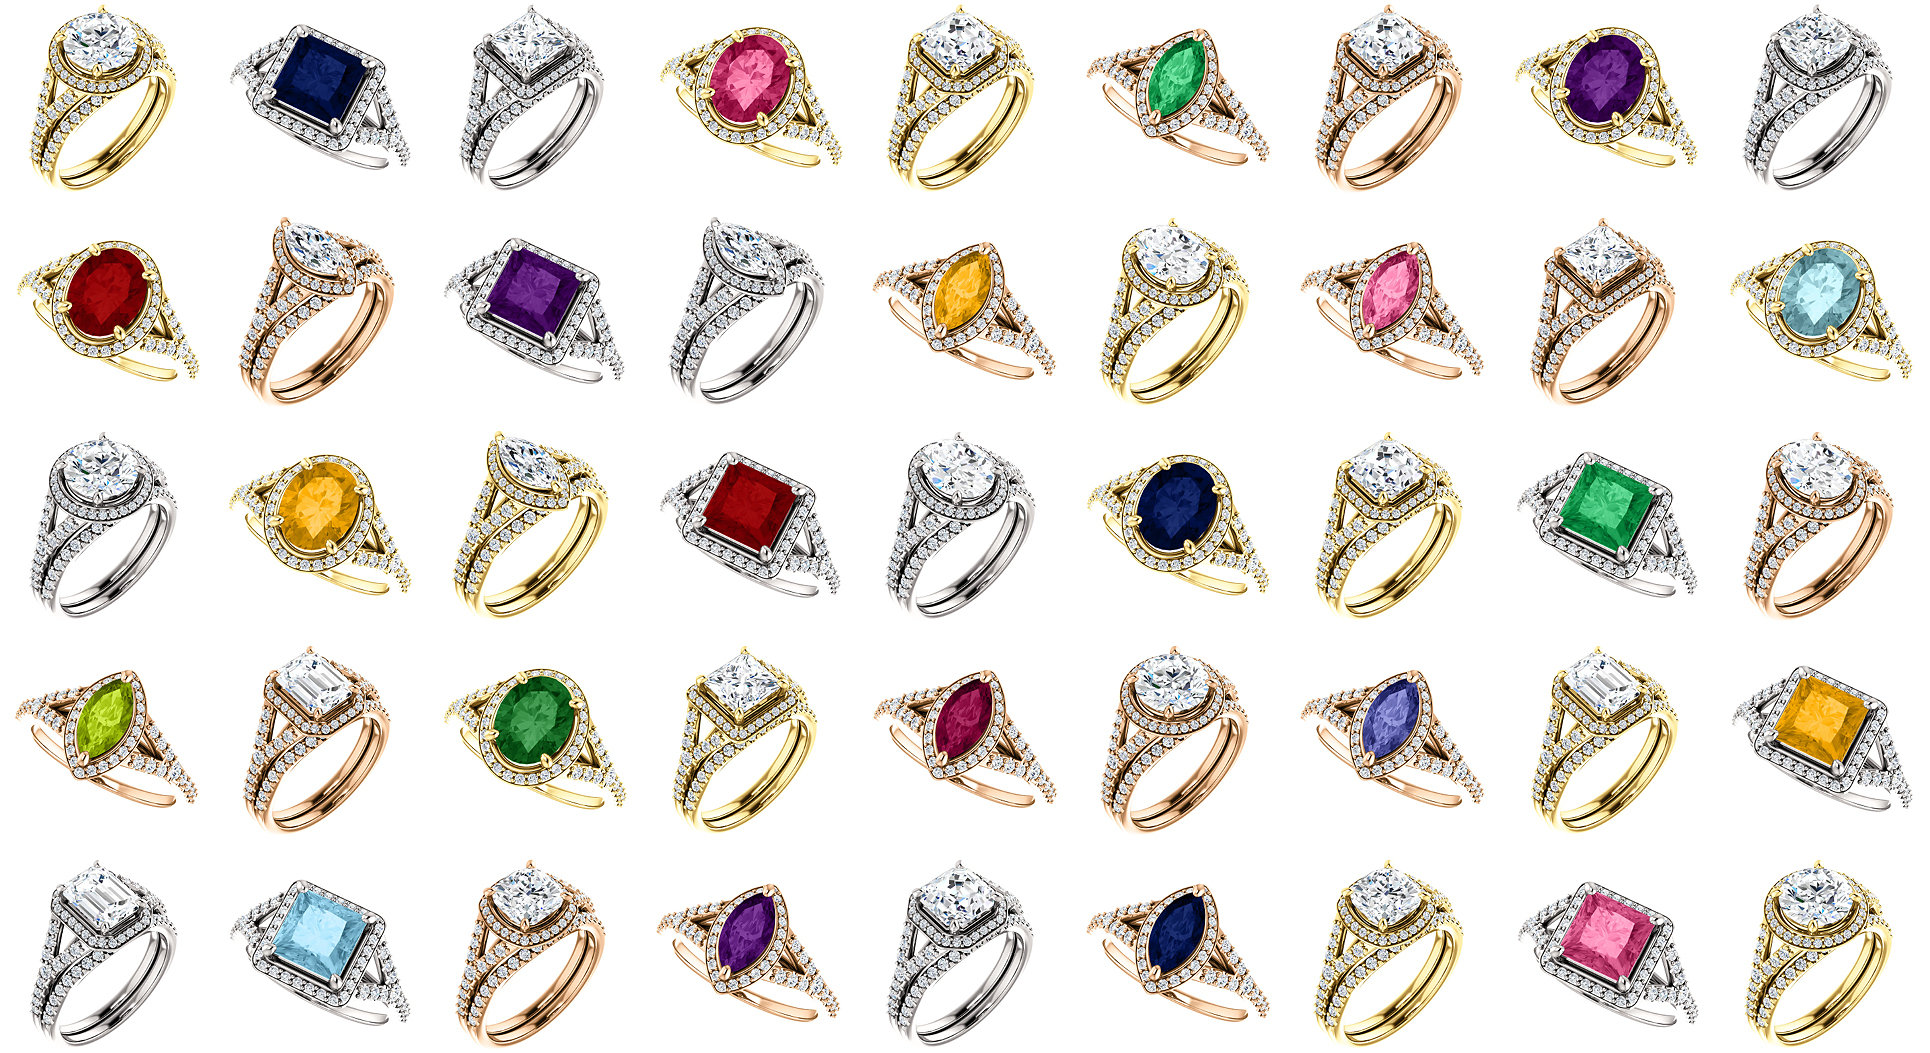 Flexible 3c Designs Choose From More Than 600 Styles